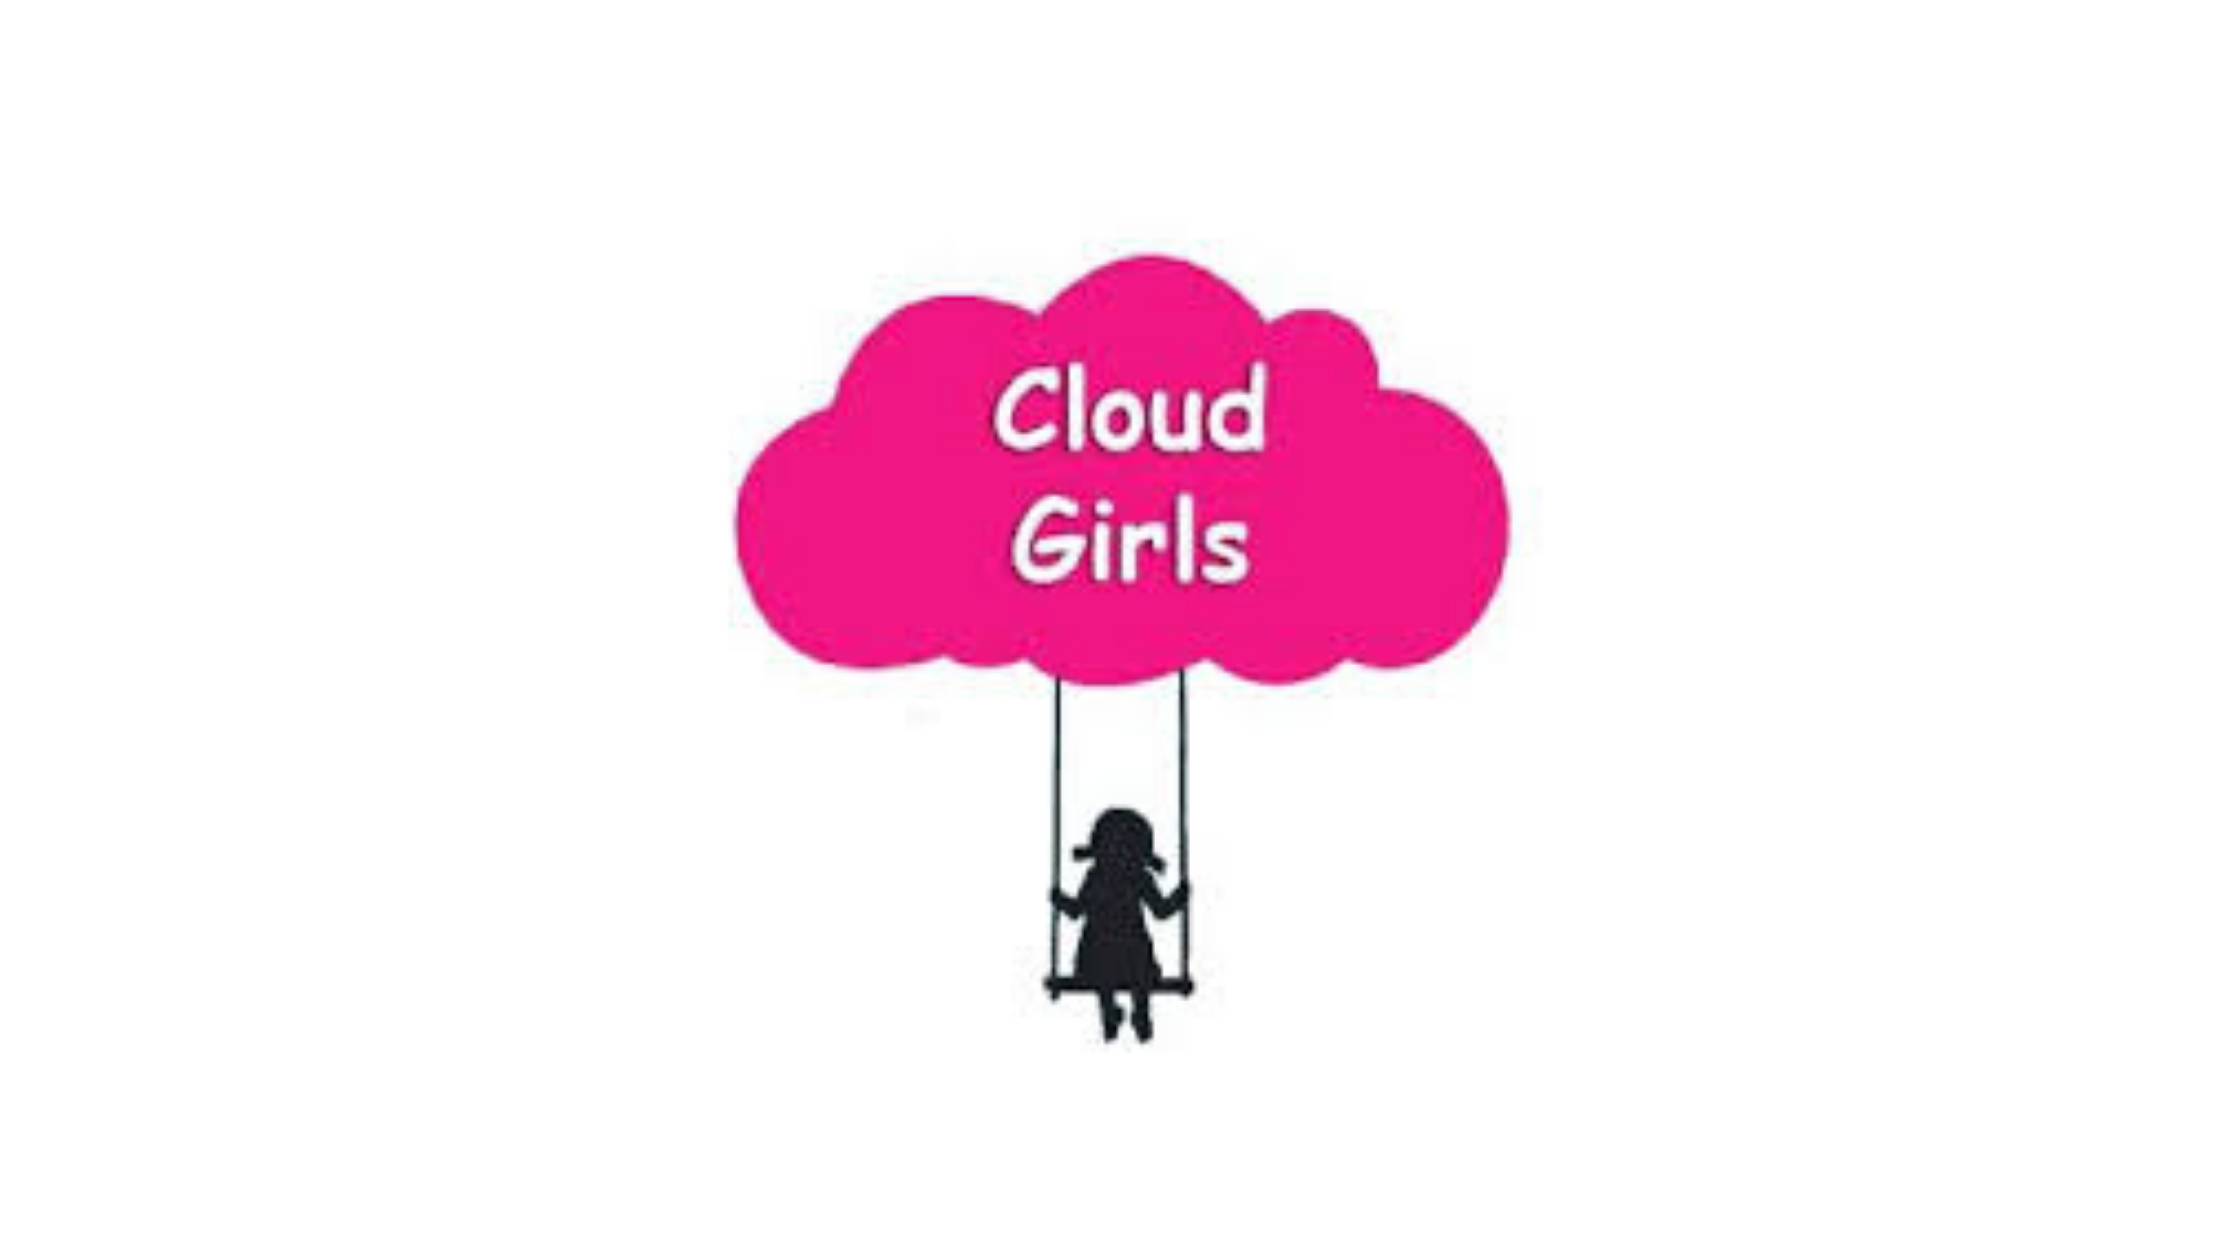 Cloud Girls